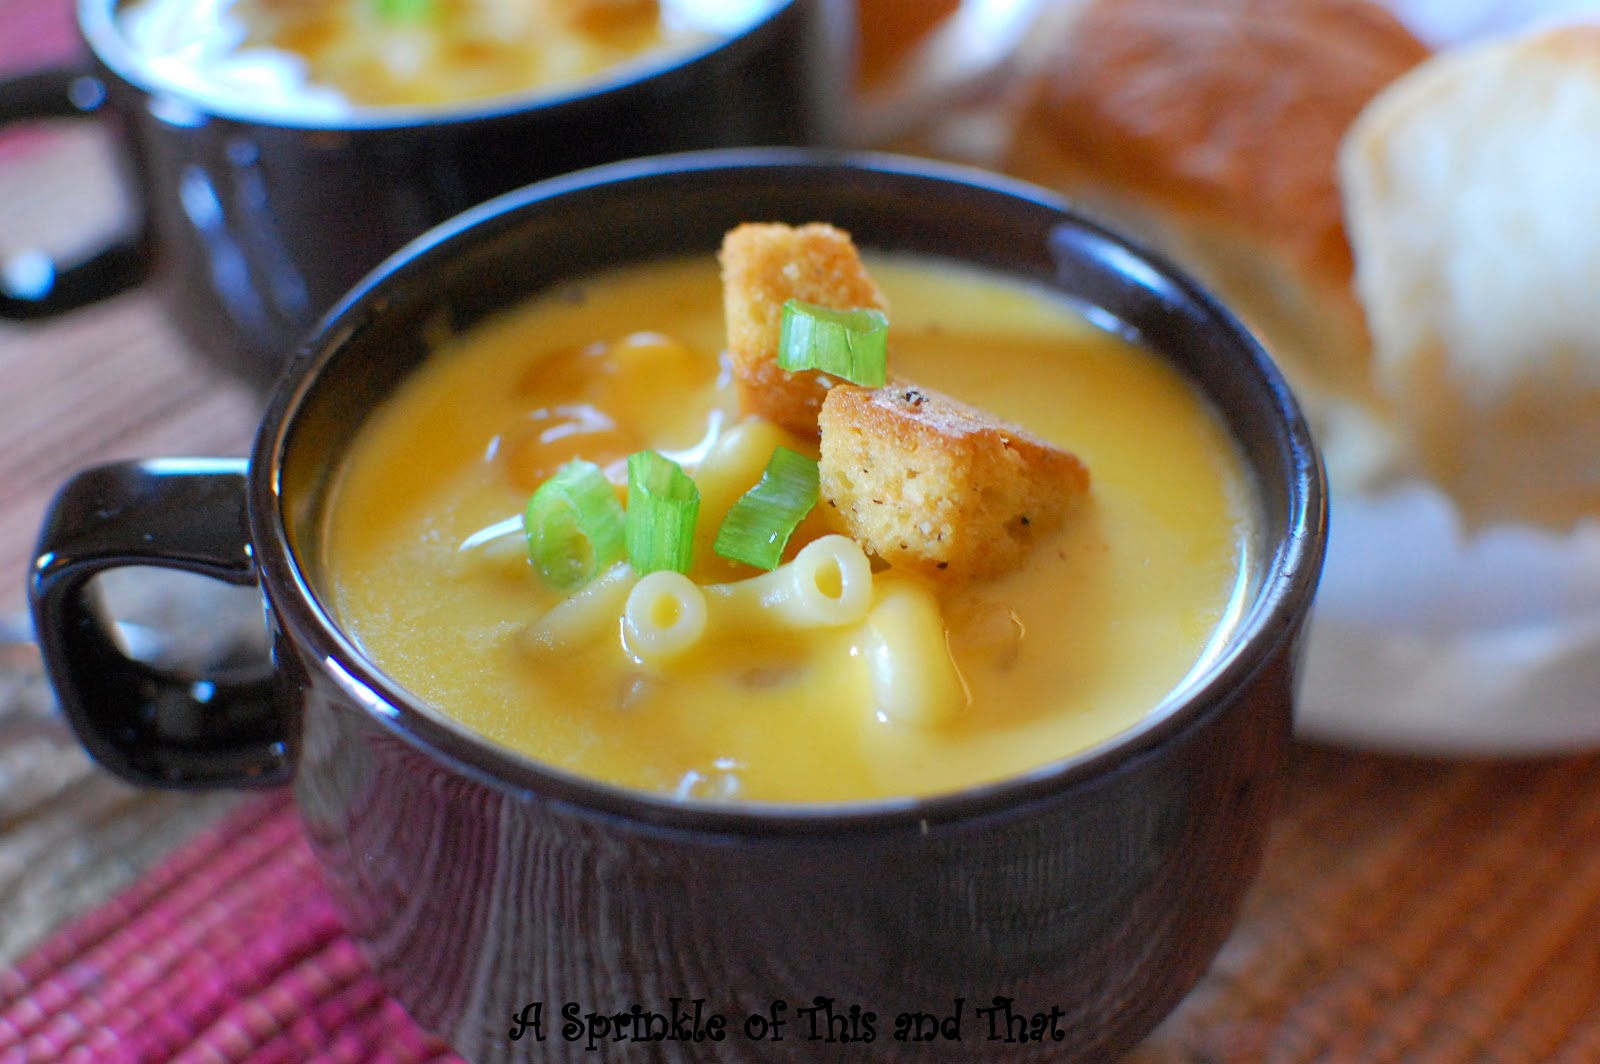 A Sprinkle of This and That: Beer Mac n Cheese Soup